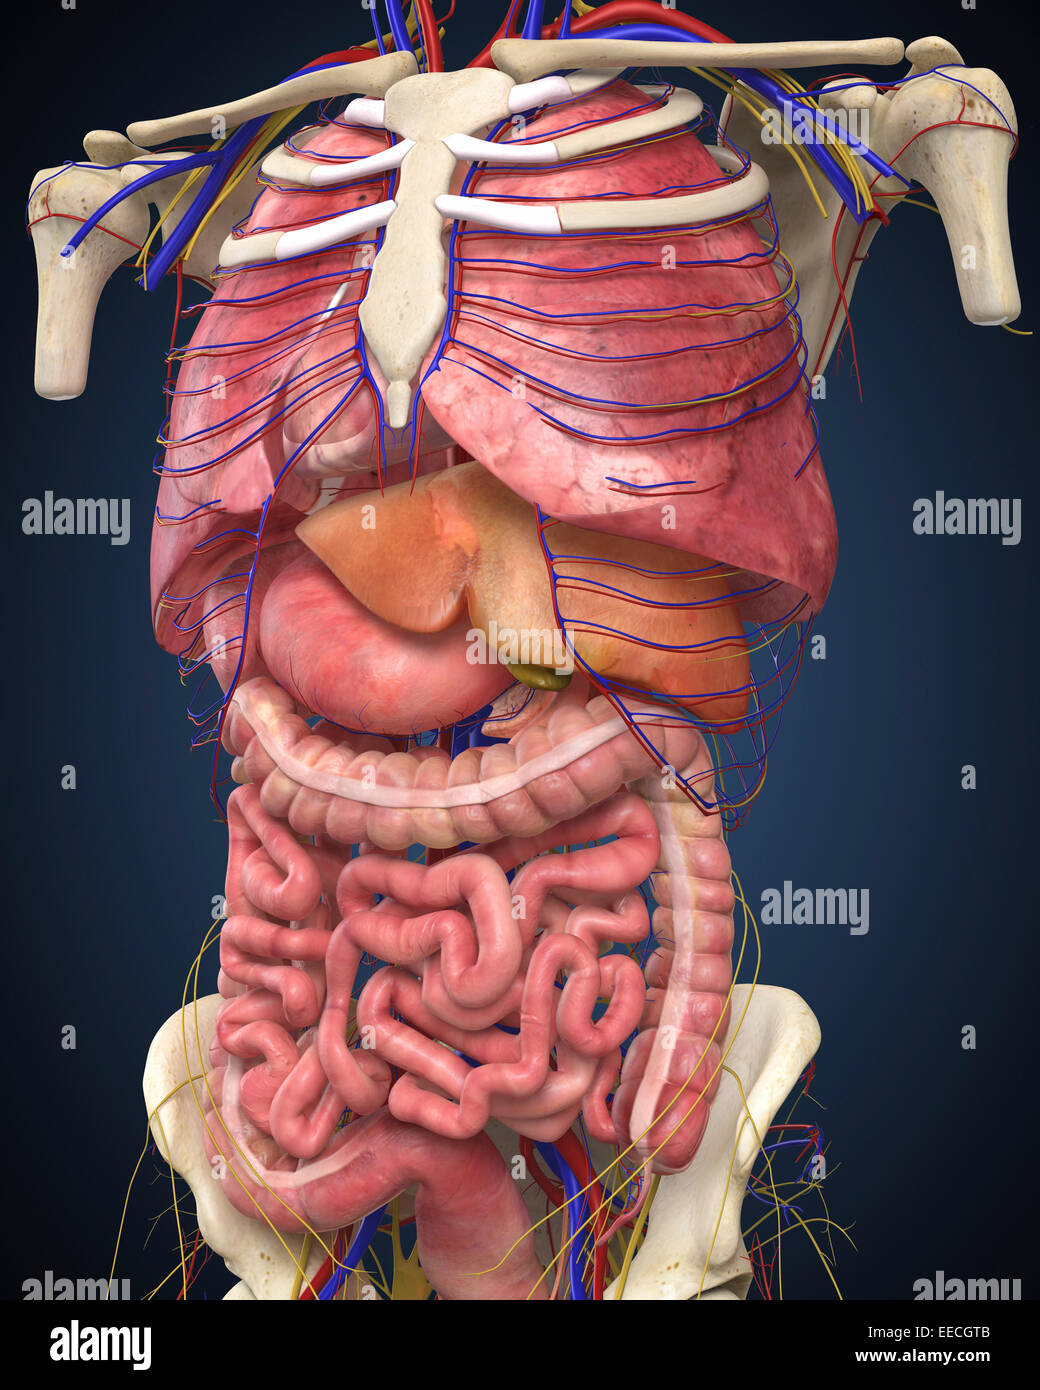 Midsection view showing internal organs of human body. Stock Photo